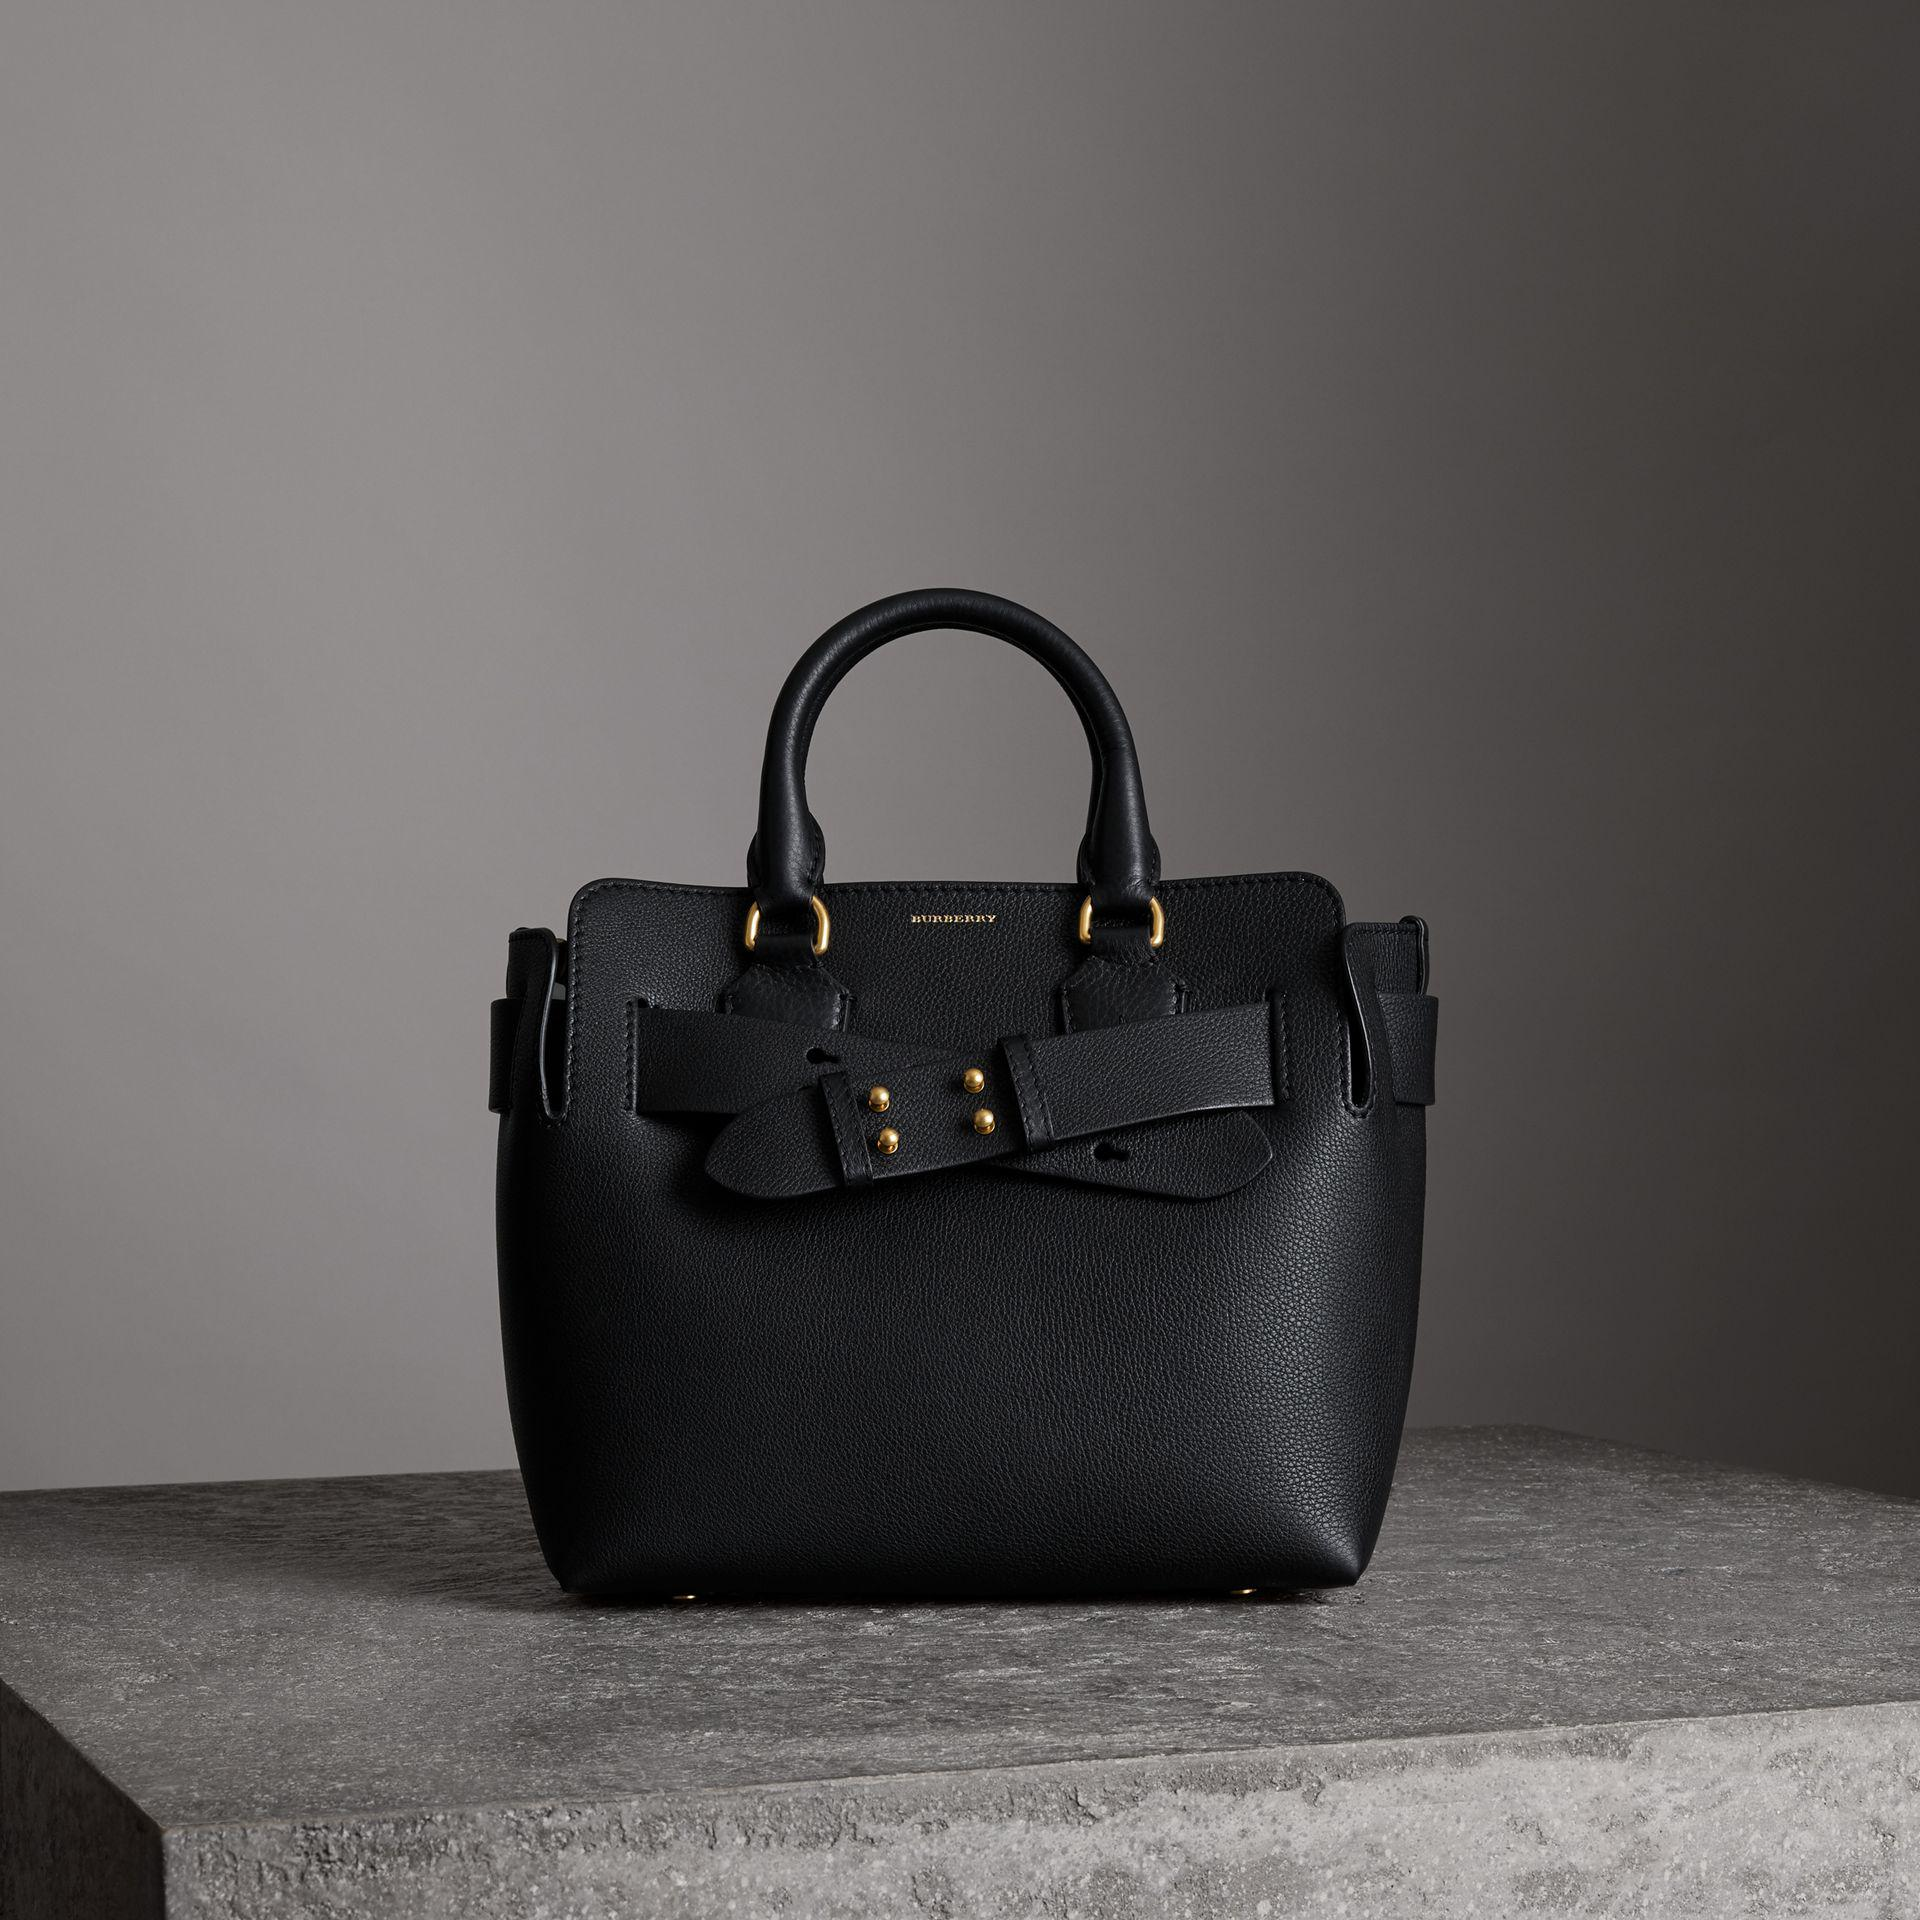 The Satchel Large Square Bag in Black Goatskin Burberry 87rM7OxZyb